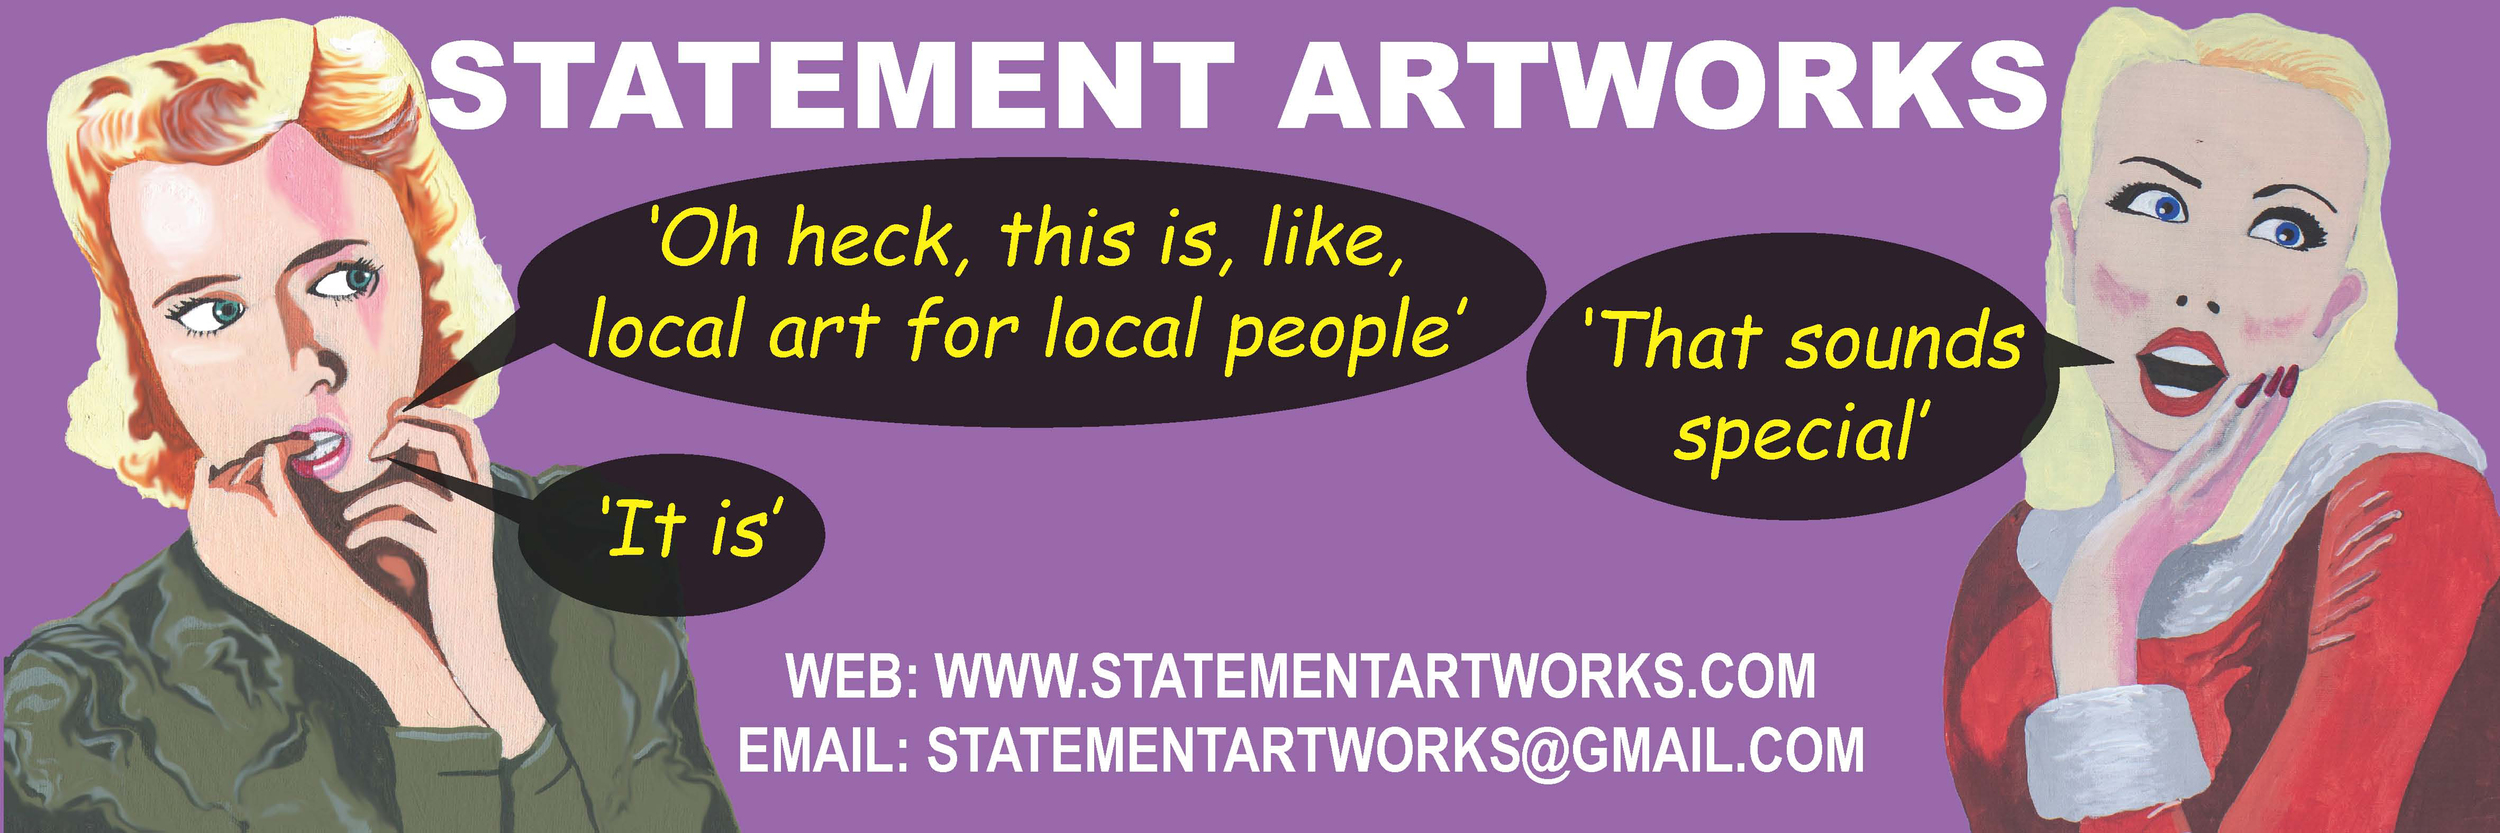 Statement Artworks